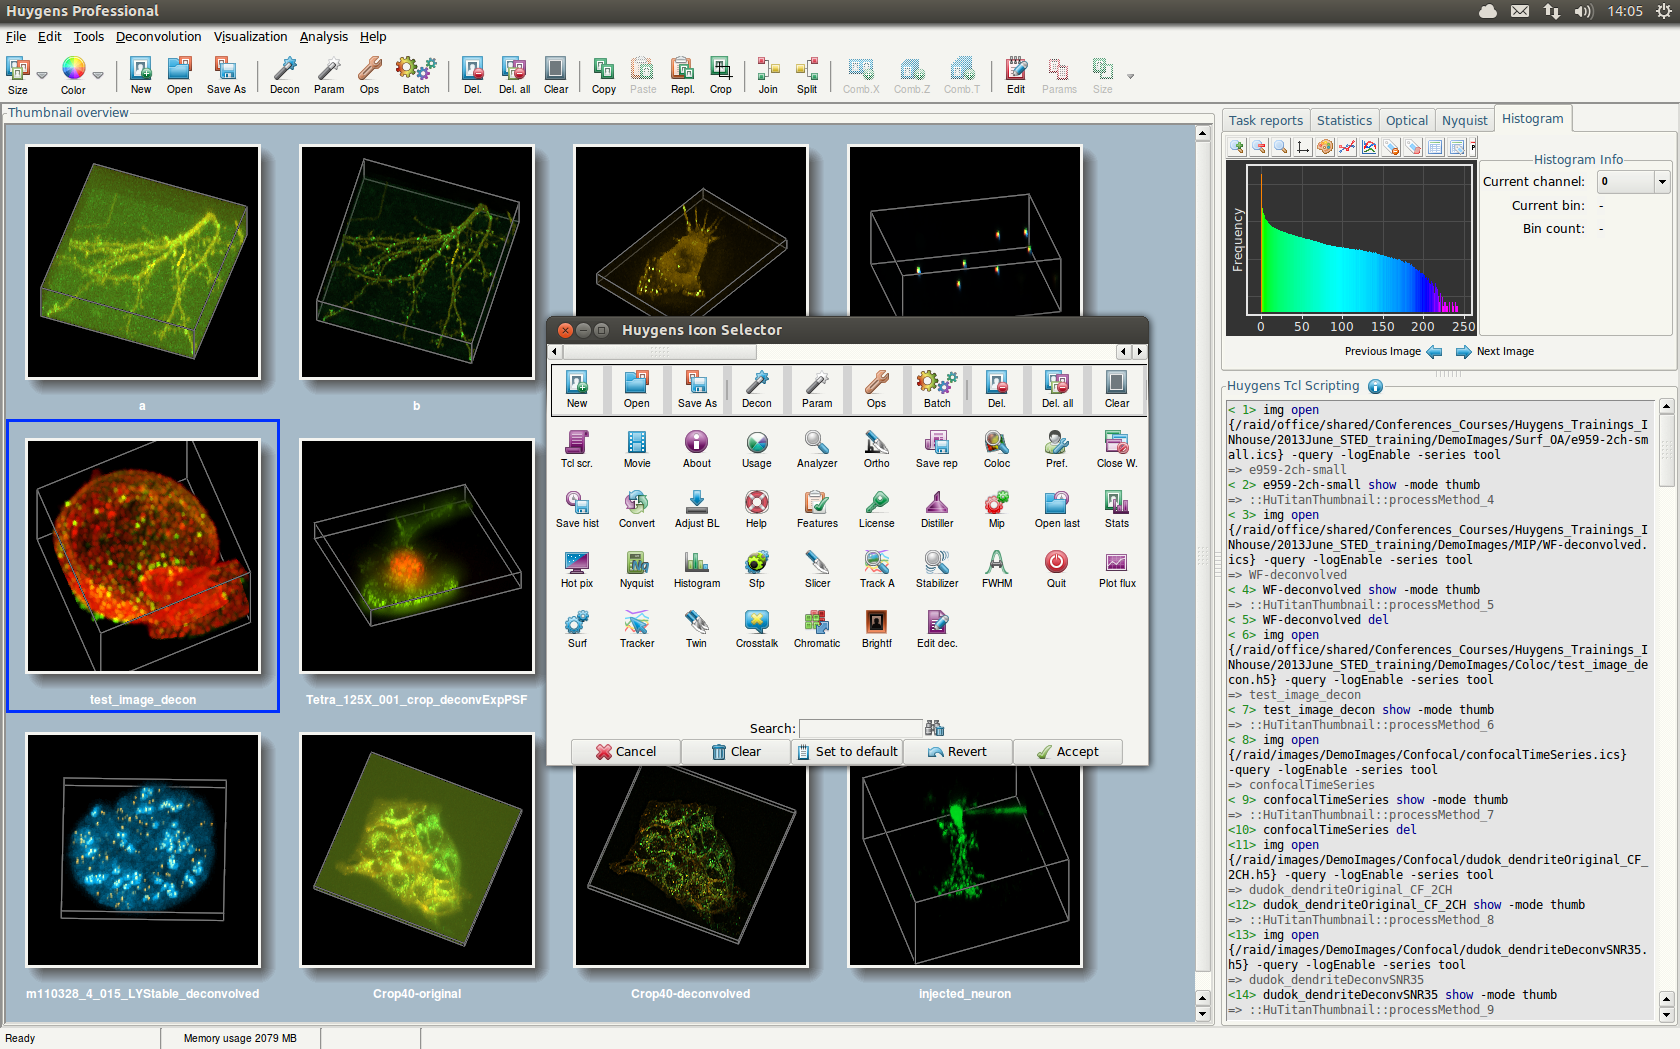 Huygens Professional with new MIP thumbnails and Icon Selector